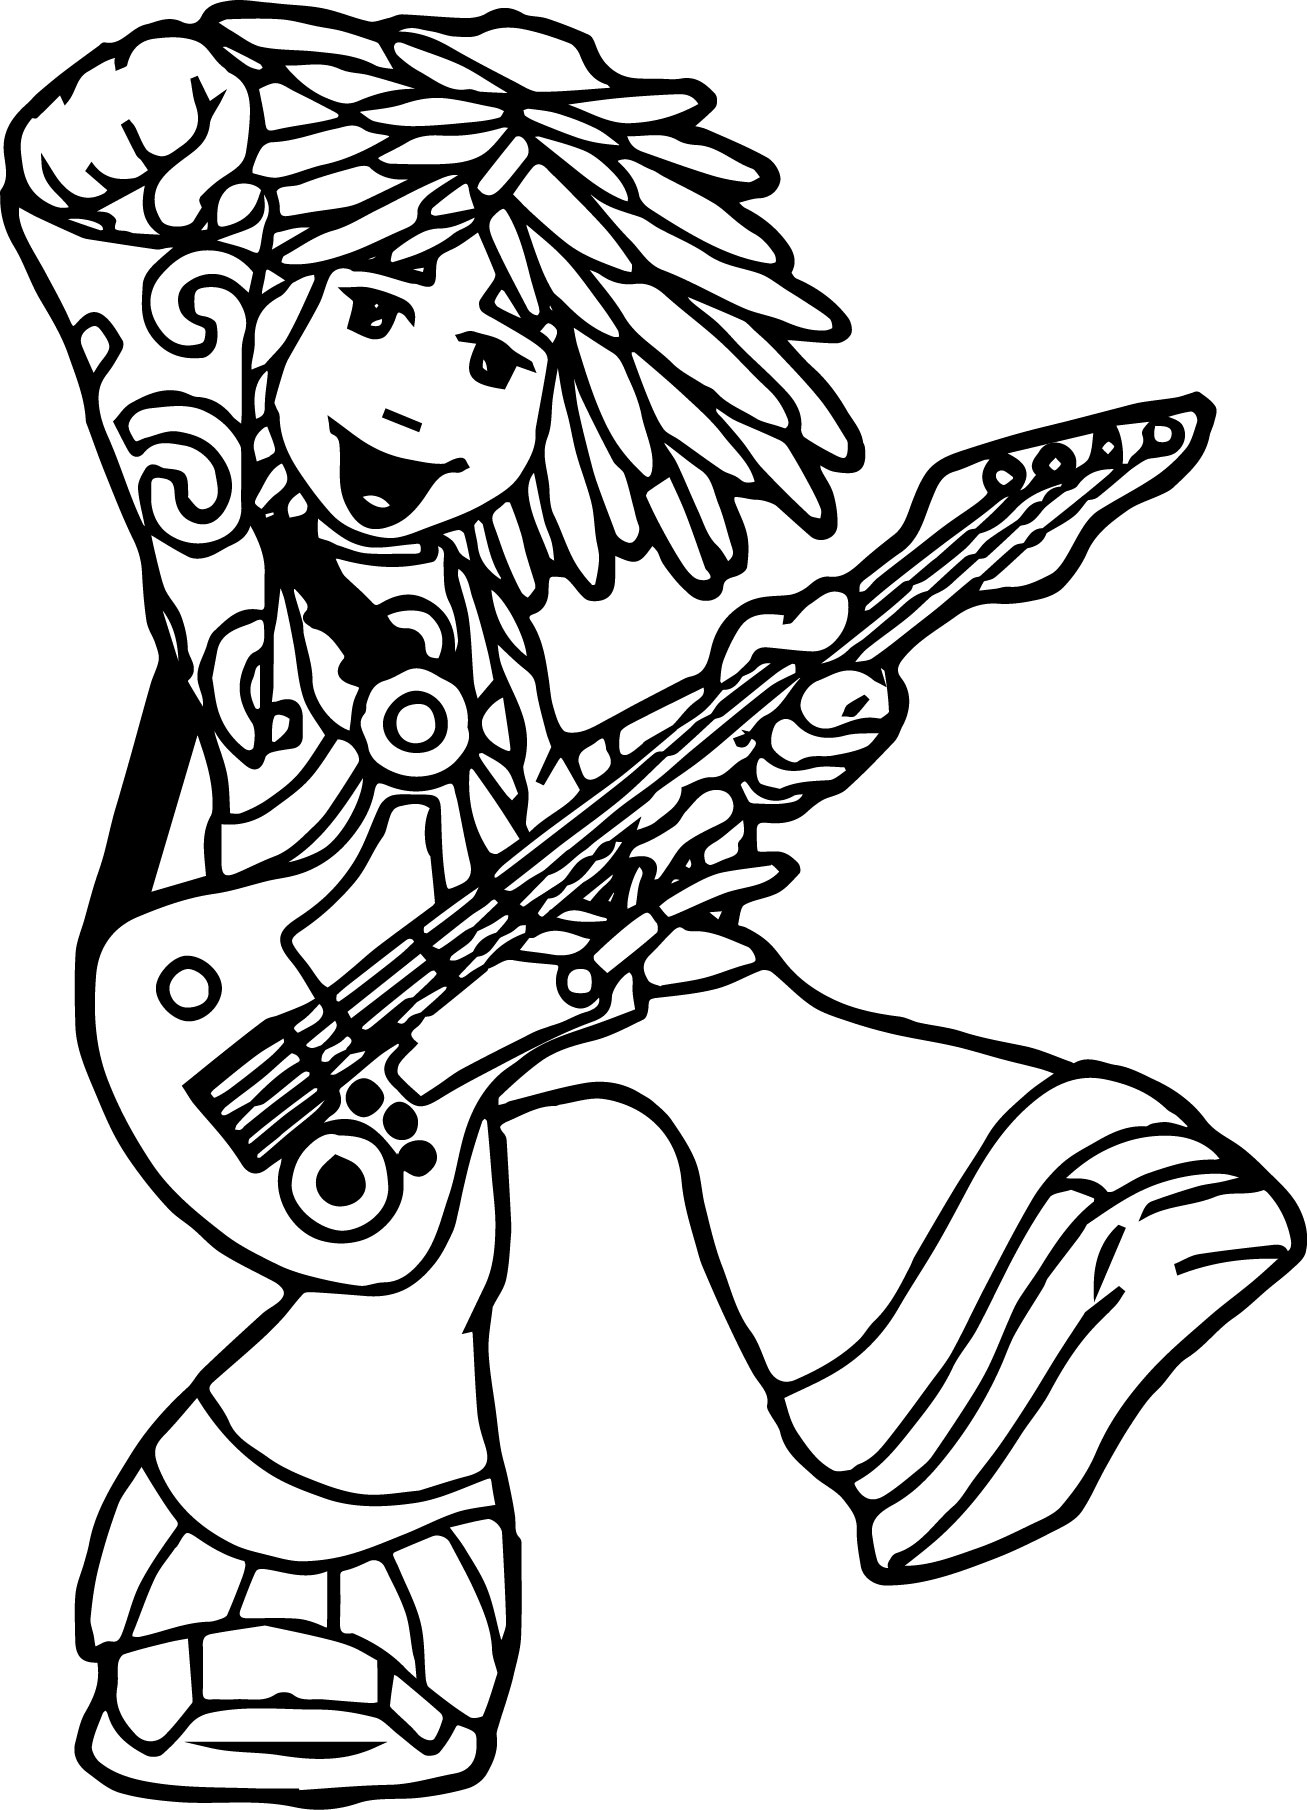 The Doodlebops Moe Doodle Playing Guitar Show Coloring Pages